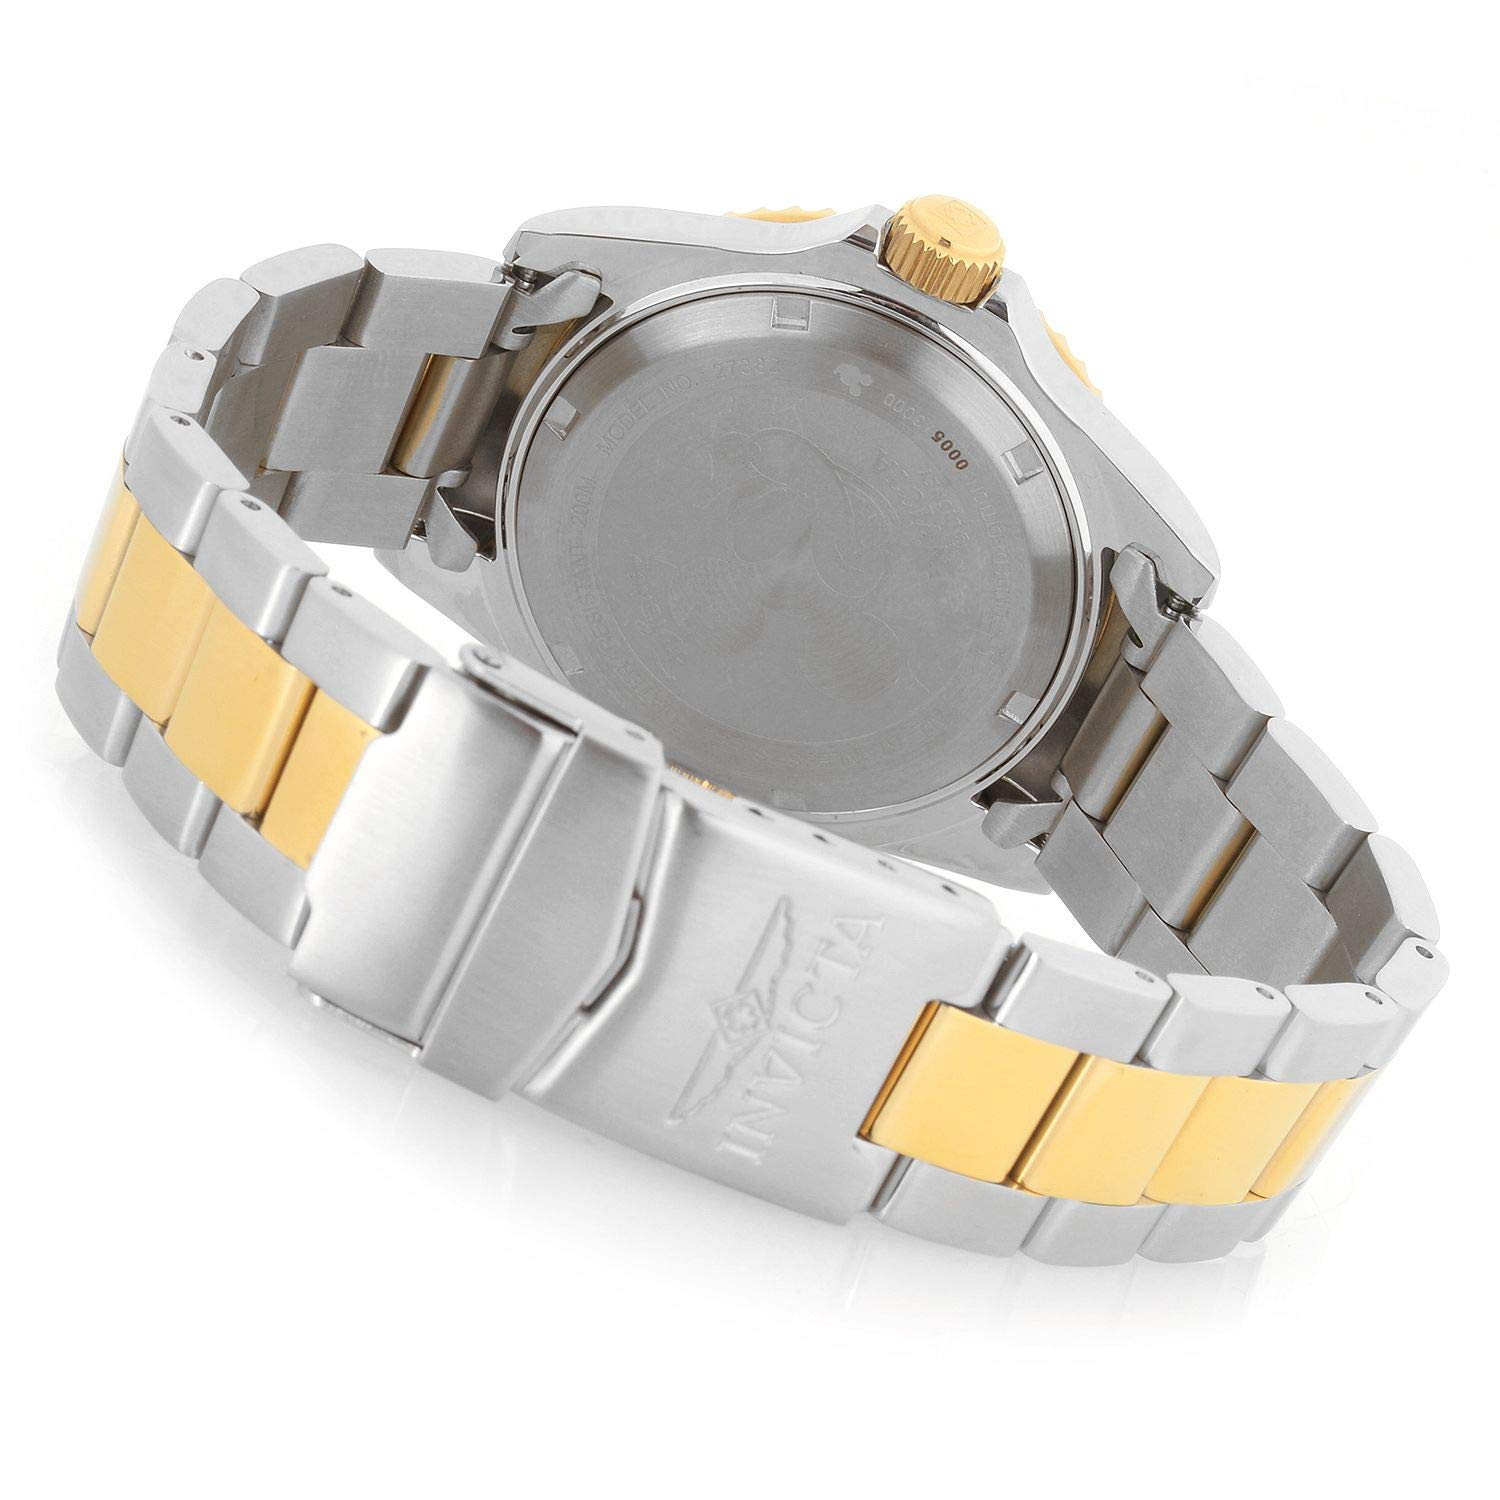 Invicta Women s Disney Limited Edition Quartz Watch with Stainless Steel Strap, Silver, 20 Model 27382